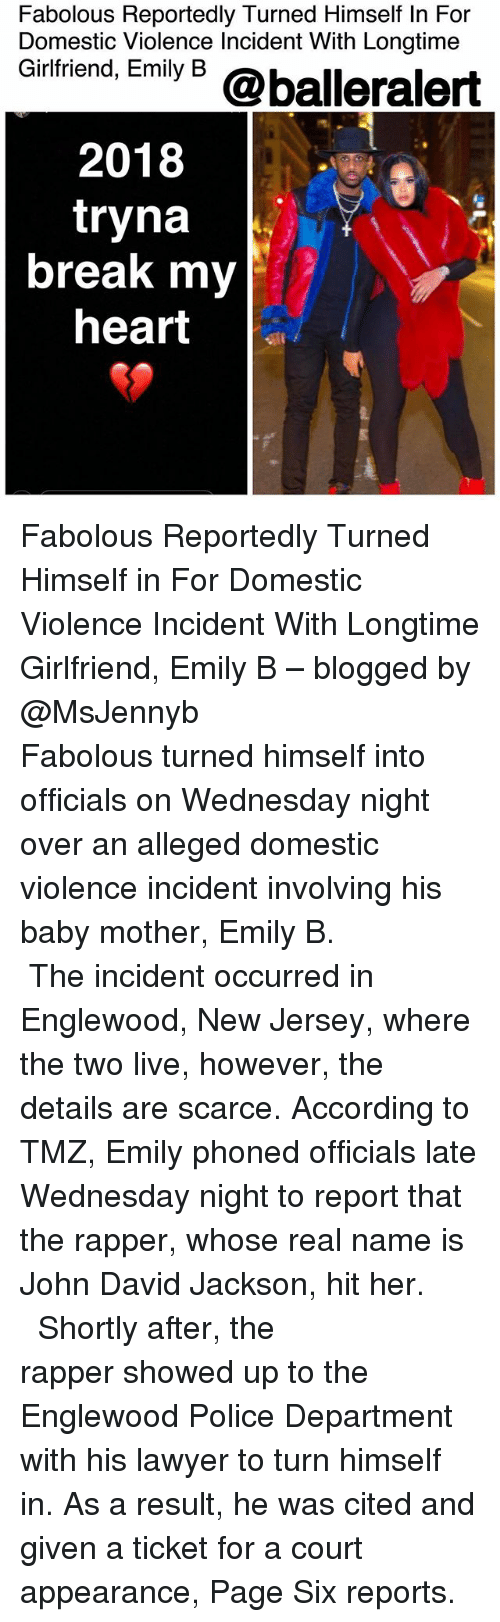 Fabolous, Lawyer, and Memes: Fabolous Reportedly Turned Himself In For  Domestic Violence Incident With Longtime  Gintriend, Emiy 6 @balleralert  2018  tryna  break my  heart Fabolous Reportedly Turned Himself in For Domestic Violence Incident With Longtime Girlfriend, Emily B – blogged by @MsJennyb ⠀⠀⠀⠀⠀⠀⠀⠀⠀ ⠀⠀⠀⠀⠀⠀⠀⠀⠀ Fabolous turned himself into officials on Wednesday night over an alleged domestic violence incident involving his baby mother, Emily B. ⠀⠀⠀⠀⠀⠀⠀⠀⠀ ⠀⠀⠀⠀⠀⠀⠀⠀⠀ The incident occurred in Englewood, New Jersey, where the two live, however, the details are scarce. According to TMZ, Emily phoned officials late Wednesday night to report that the rapper, whose real name is John David Jackson, hit her. ⠀⠀⠀⠀⠀⠀⠀⠀⠀ ⠀⠀⠀⠀⠀⠀⠀⠀⠀ Shortly after, the rapper showed up to the Englewood Police Department with his lawyer to turn himself in. As a result, he was cited and given a ticket for a court appearance, Page Six reports.